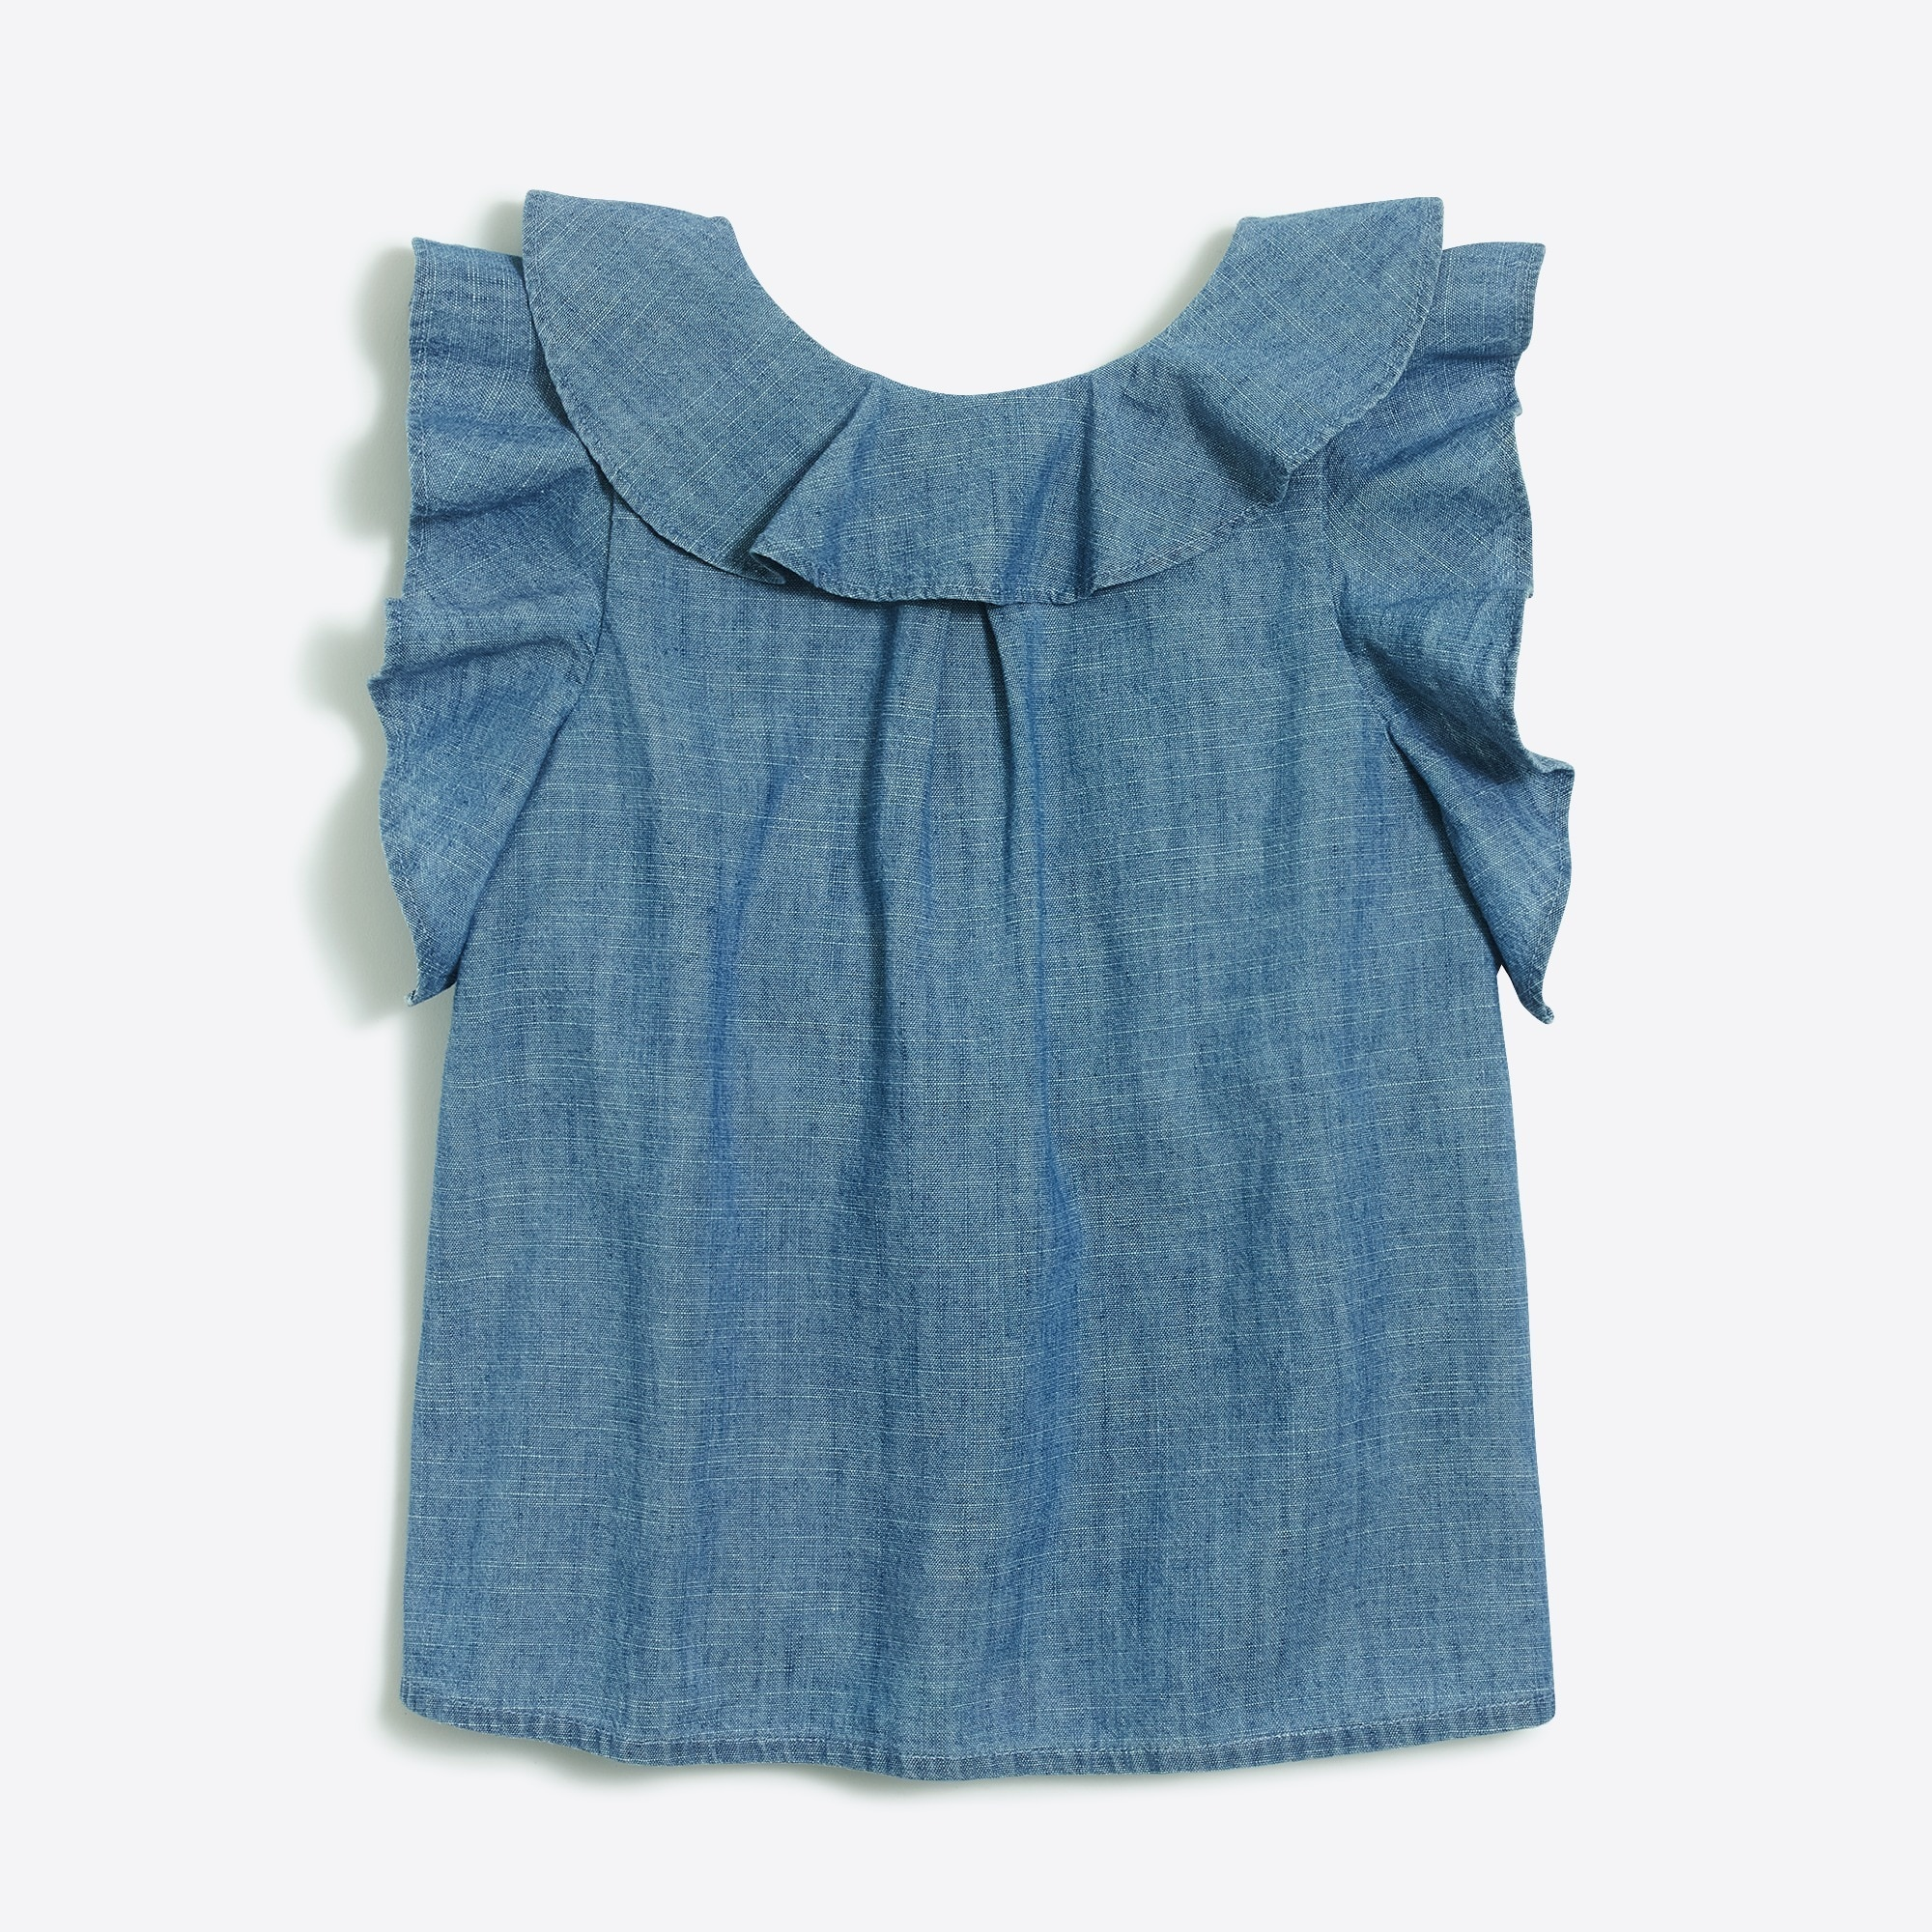 Chambray ruffle tank top factorygirls shirts, t-shirts & tops c